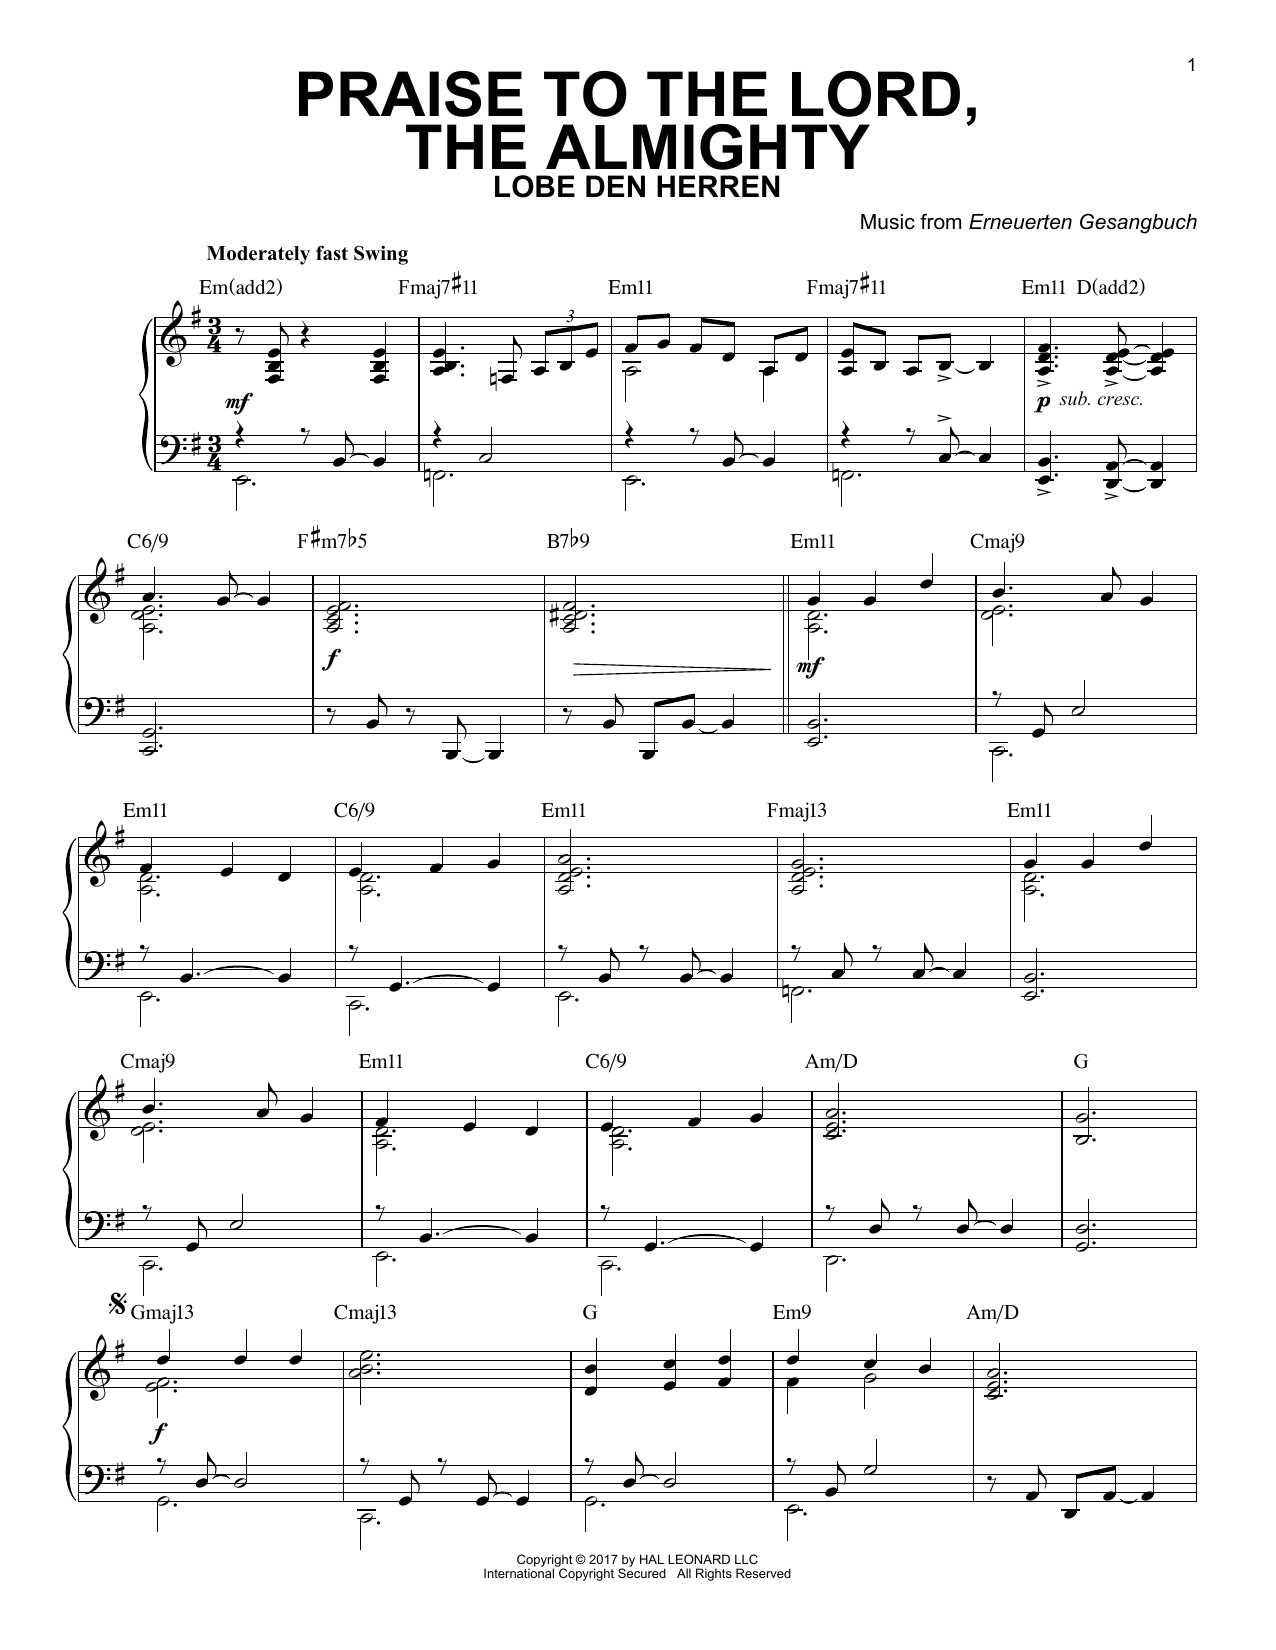 Praise To The Lord, The Almighty [Jazz version] (Piano Solo)